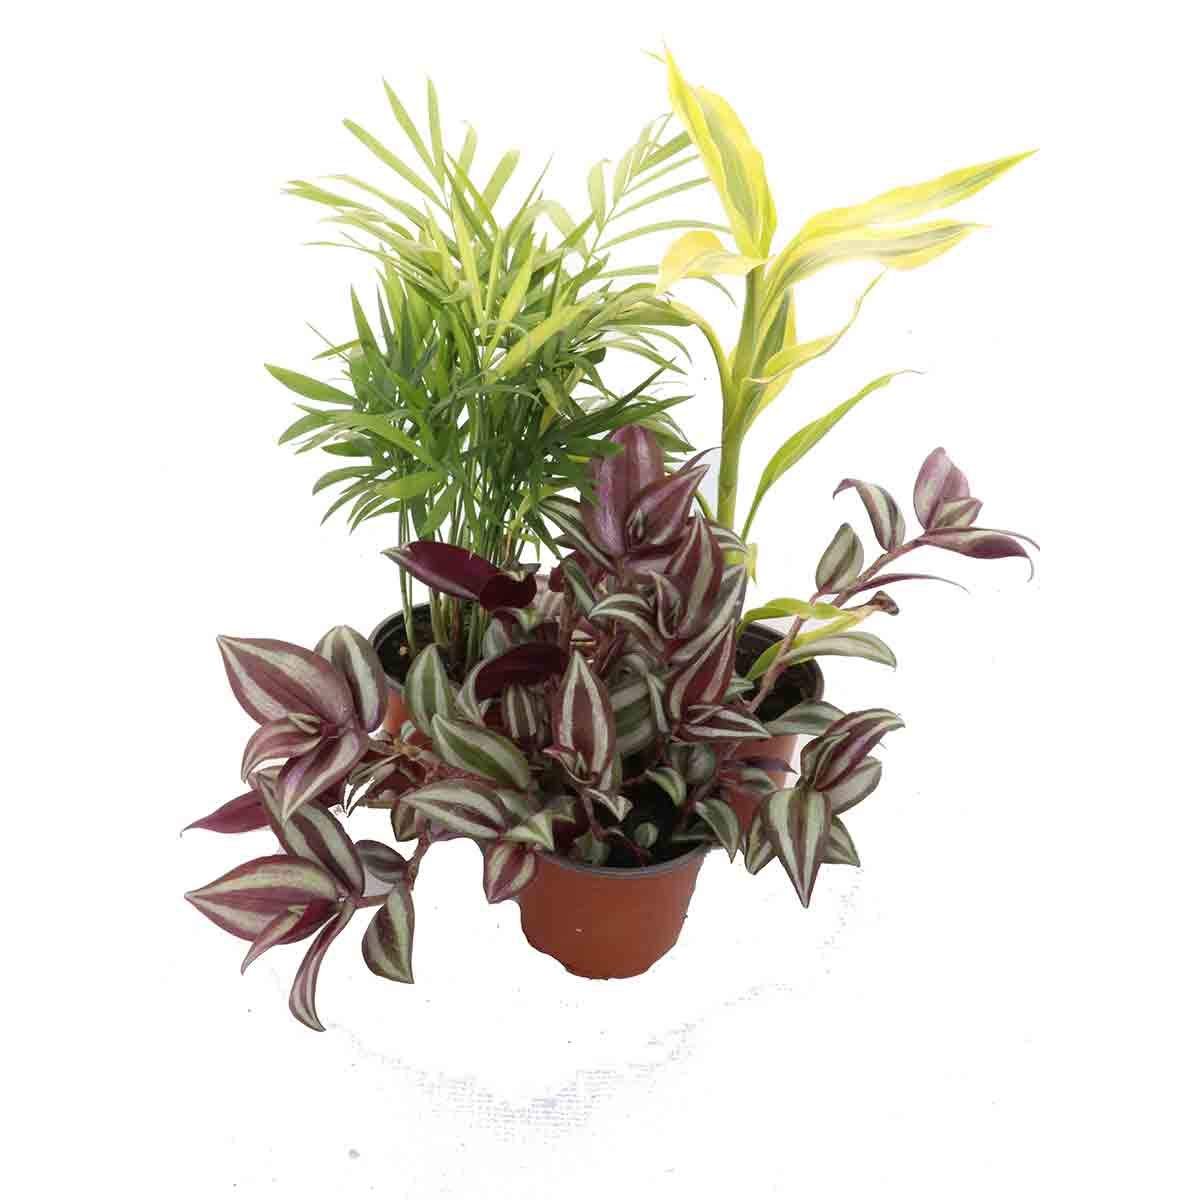 3 Pack of Fantastic House Plants - Chameadorra, Dracena Yellow, Tradescantia Newlands Nursery